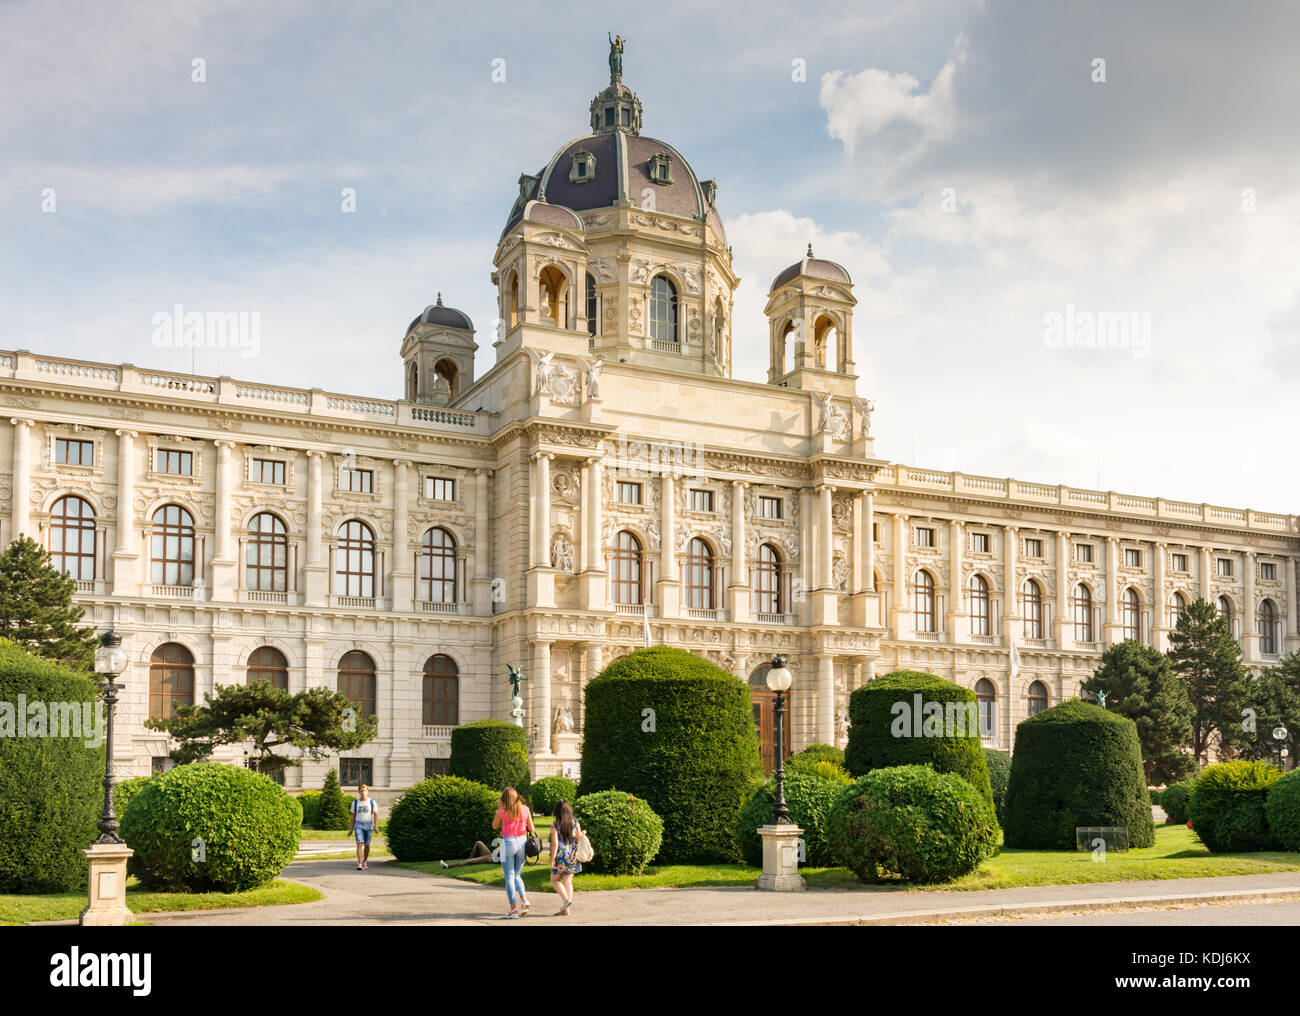 VIENNA, AUSTRIA - AUGUST 28: Tourists at the art history museum at the Maria-Theresien-Platz square in Vienna, Austria - Stock Image